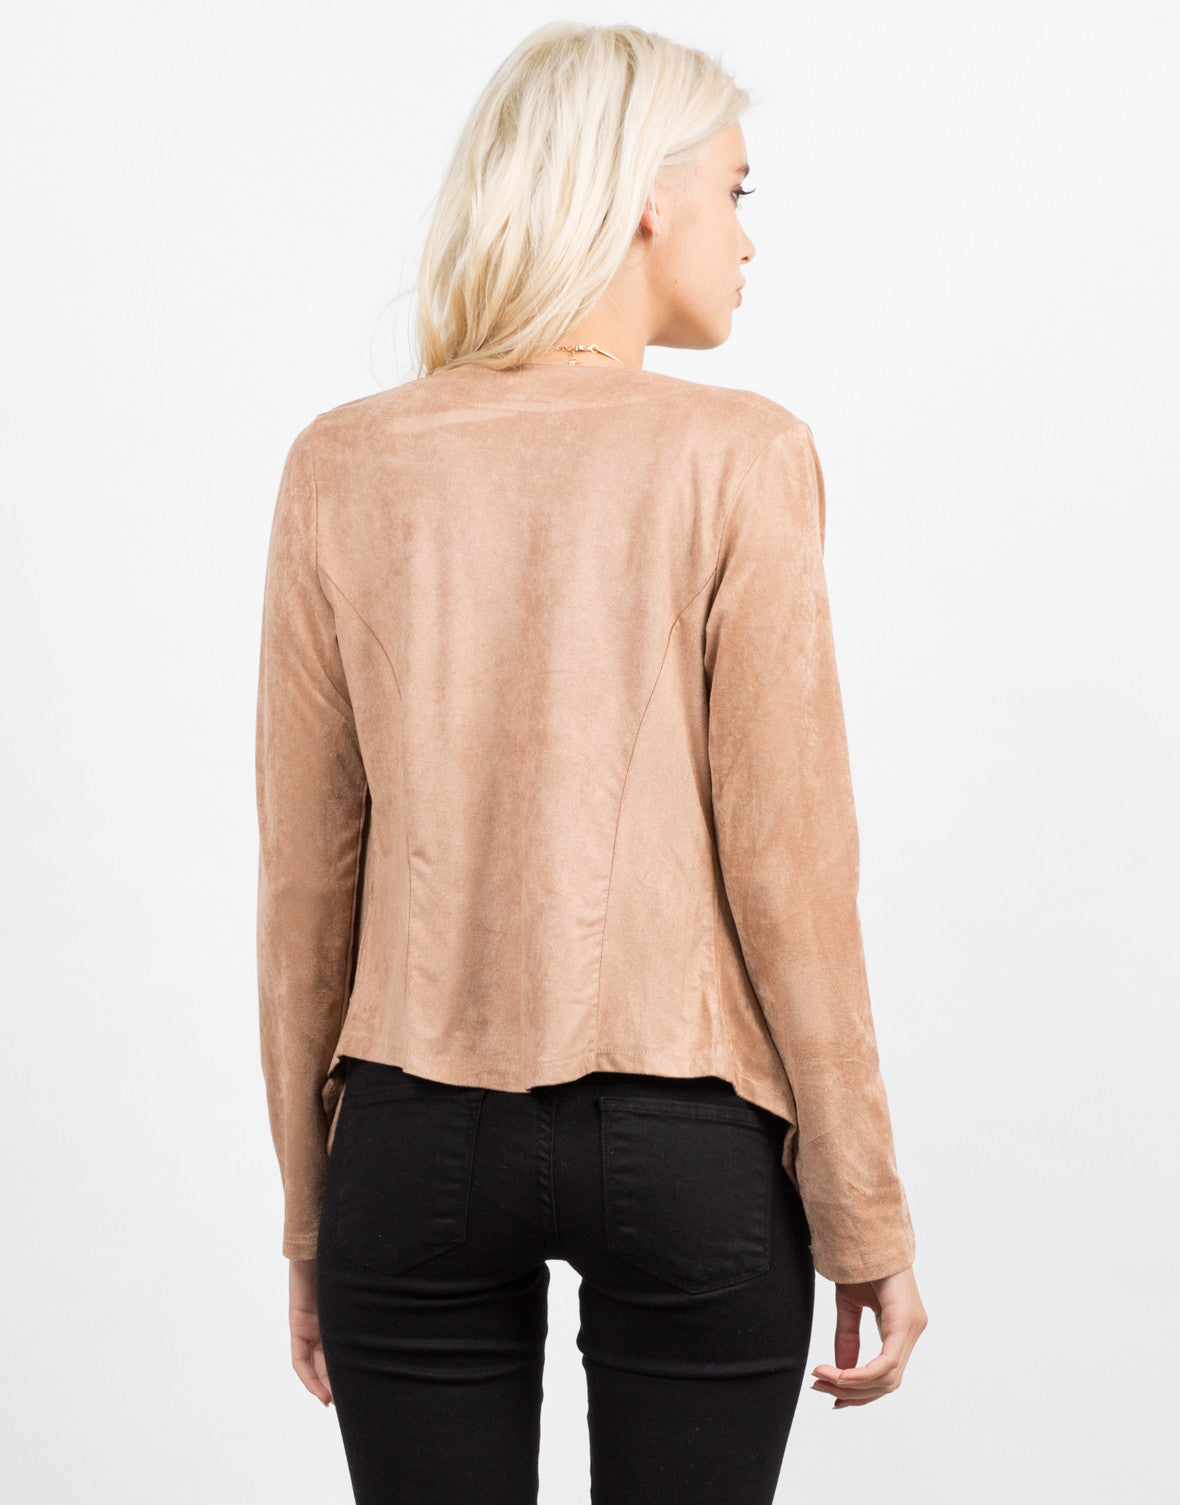 Back View of Drapey Suede Cardigan